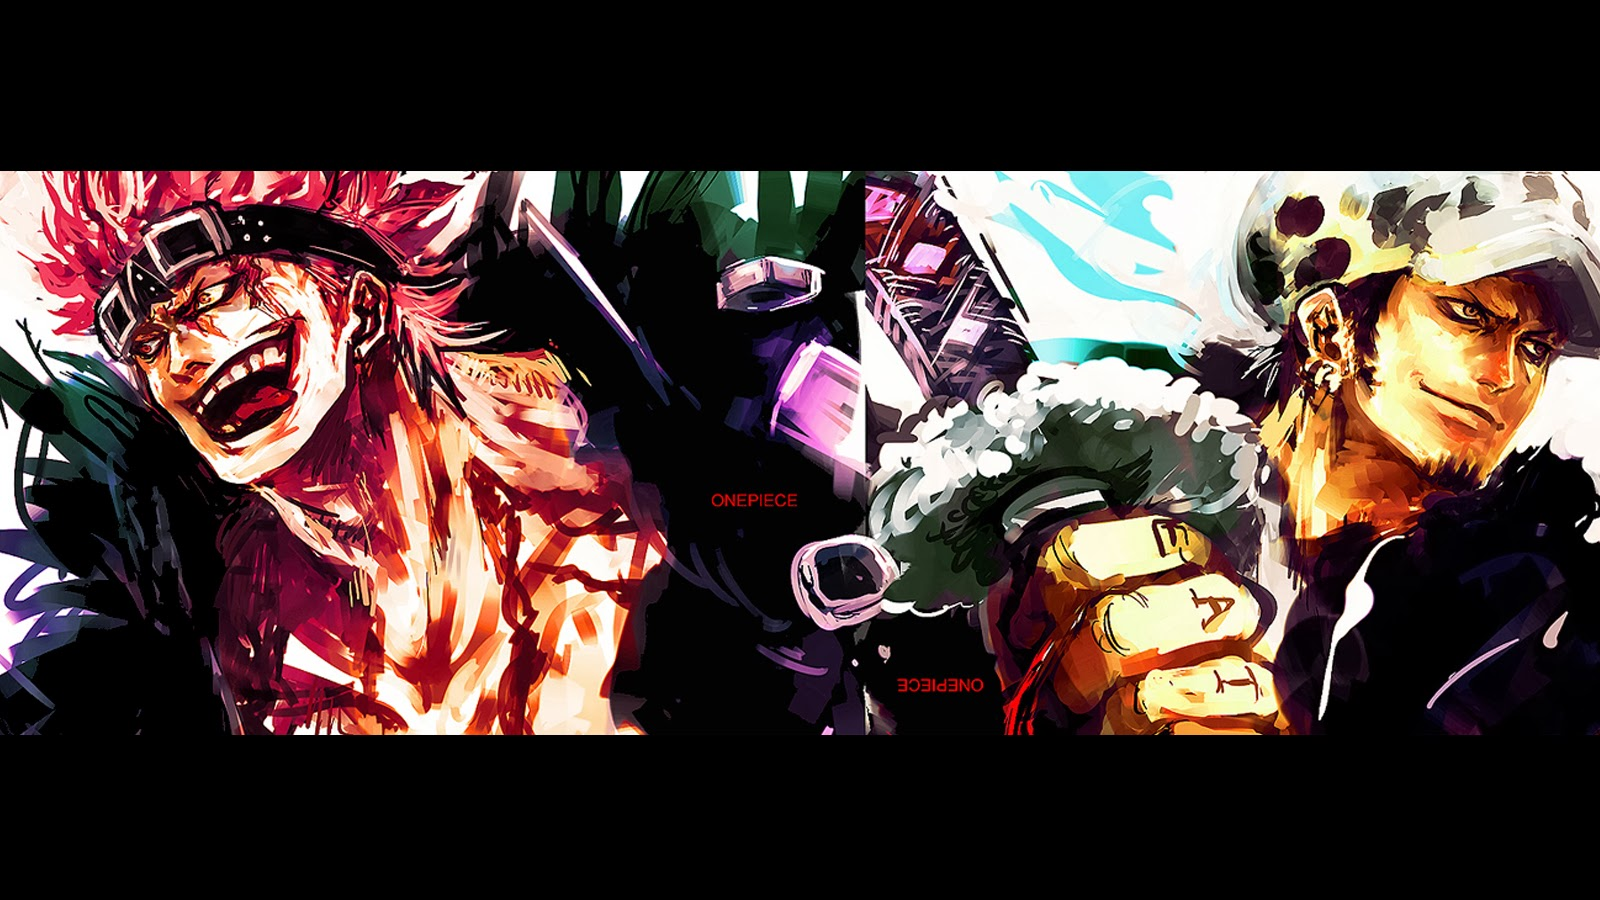 Eustass Kid Tralfagar Law Katana anime hd wallpaper y01 1600x900